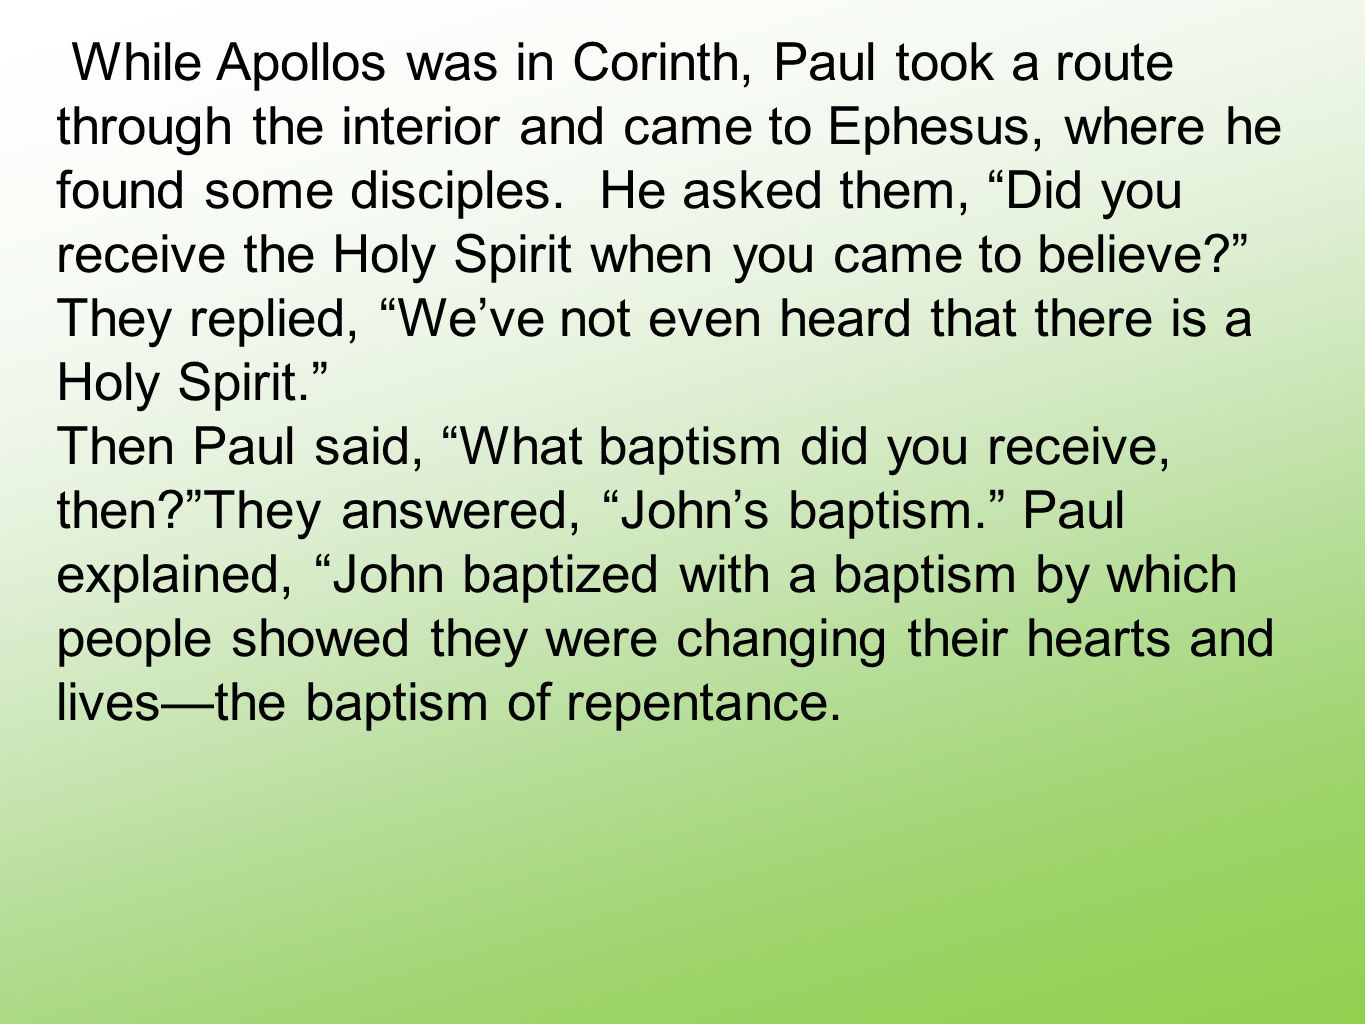 """While Apollos was in Corinth, Paul took a route through the interior and came to Ephesus, where he found some disciples. He asked them, """"Did you recei"""